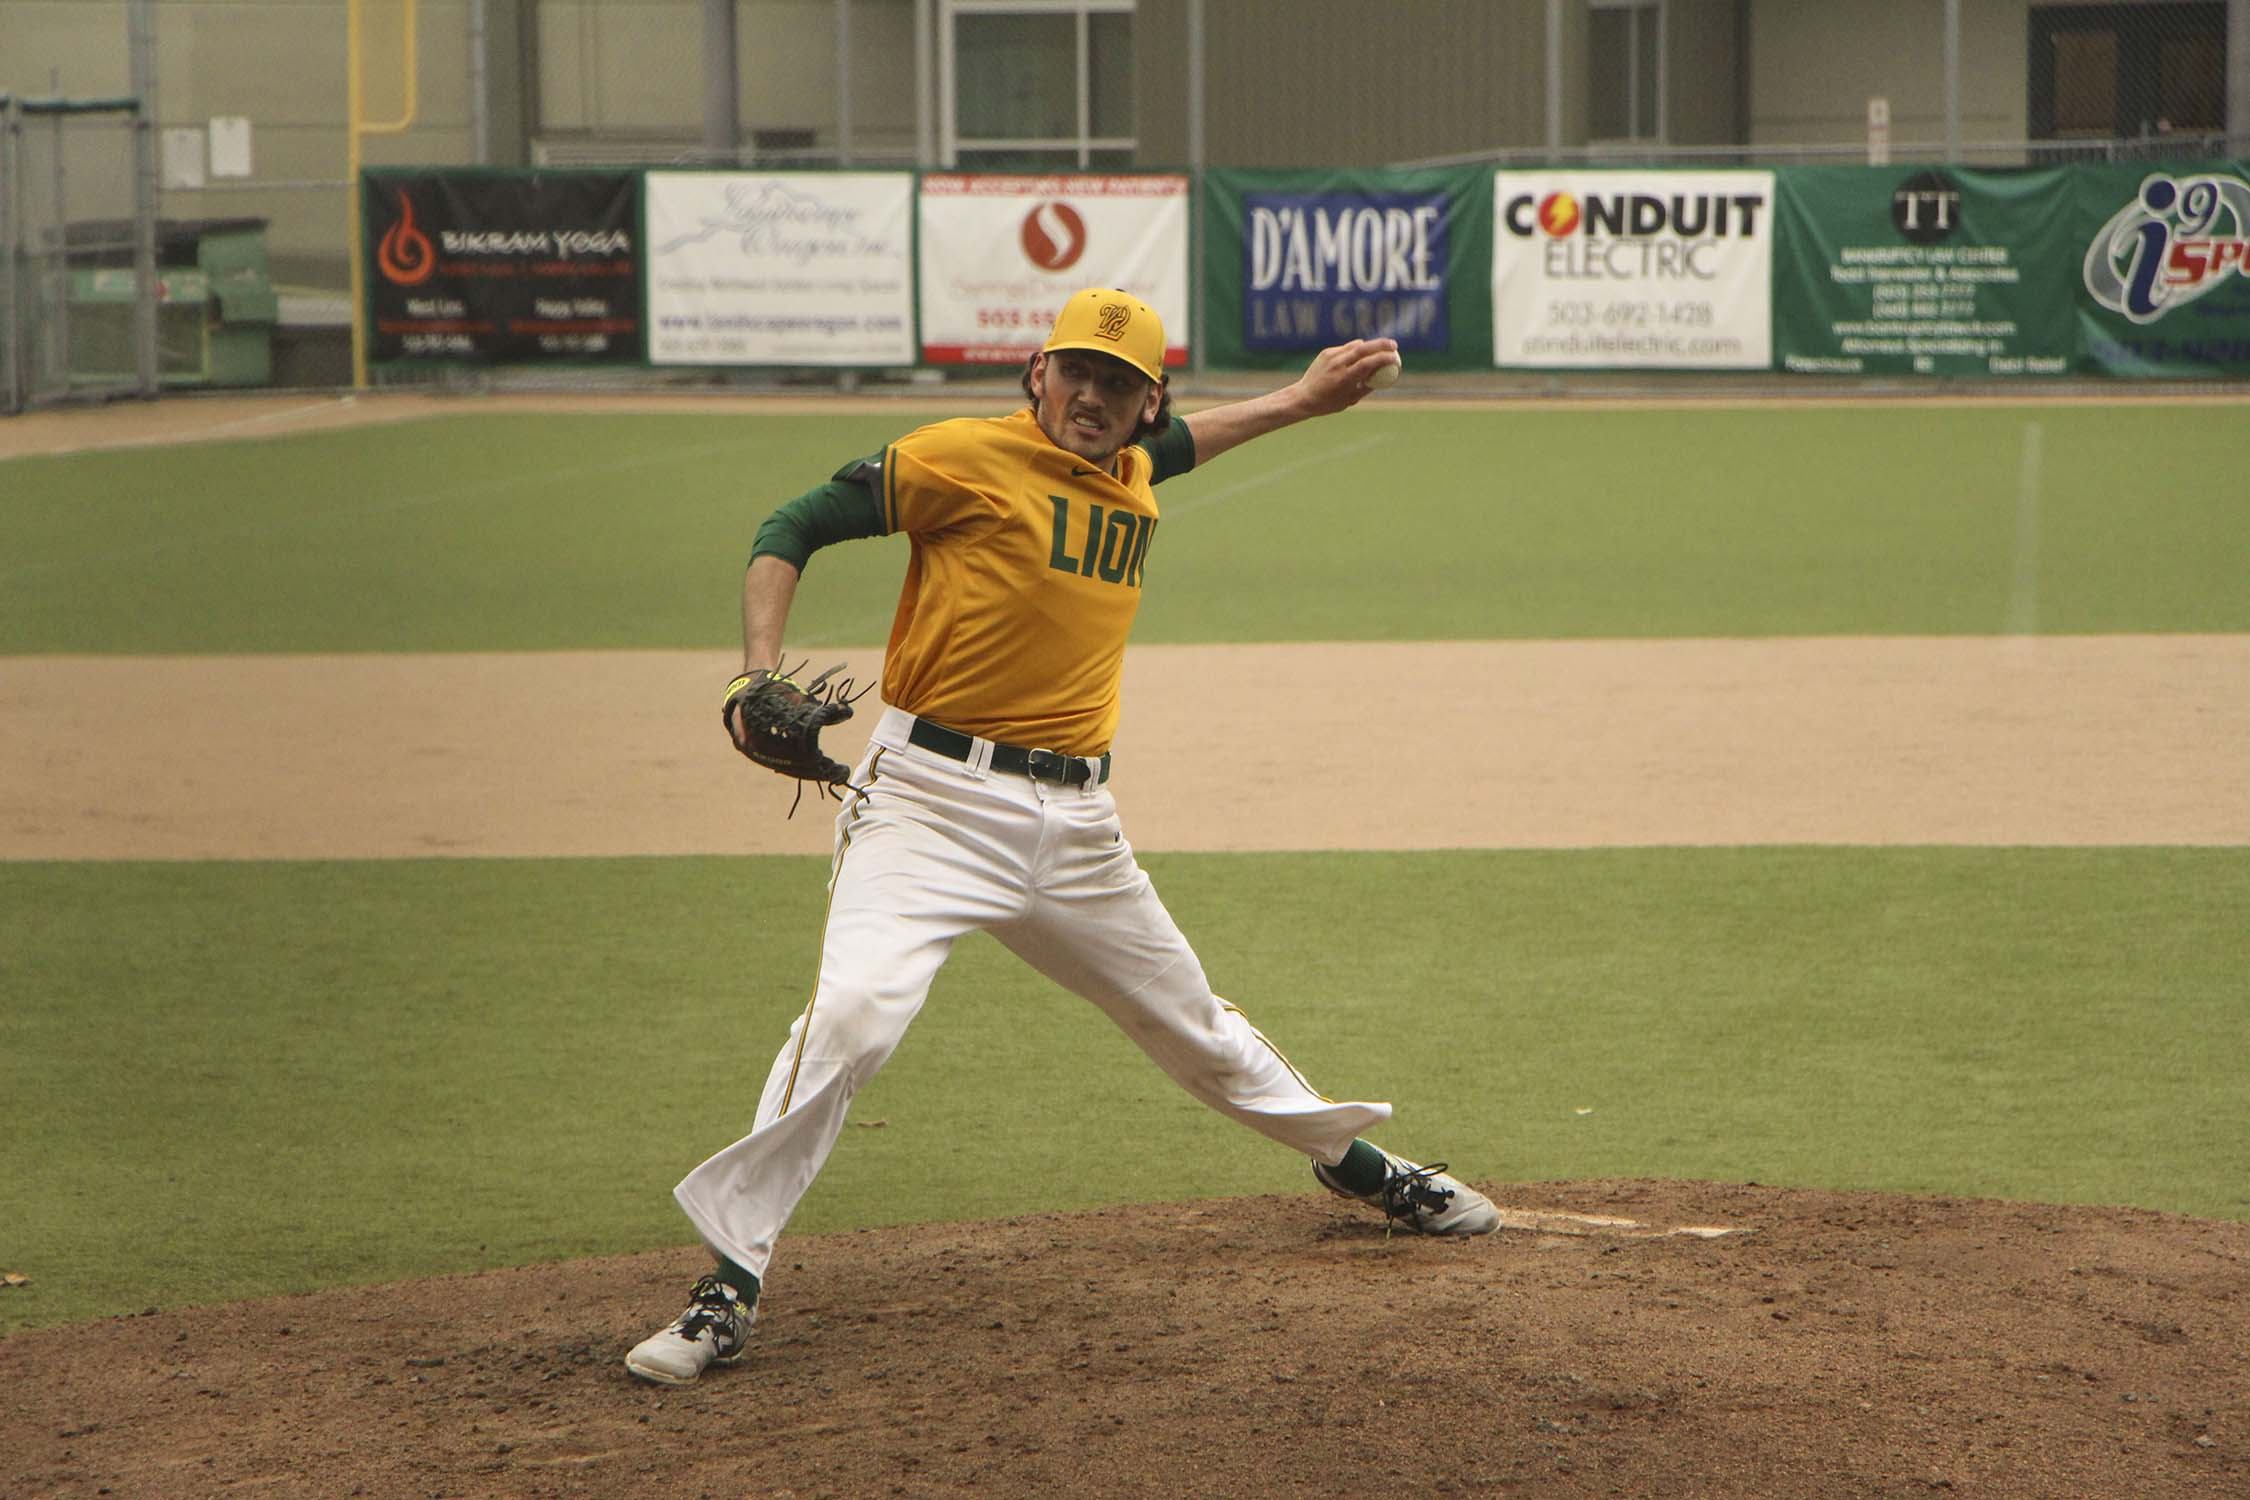 Jordan Dailey, senior, gave up no runs as he pitched six and two-thirds innings for the Lions, in a 1-0 win over McMinnville. The Lions next play Sheldon in the State Championship game, Saturday 5 p.m. at the  Volcanoes Stadium in Salem.